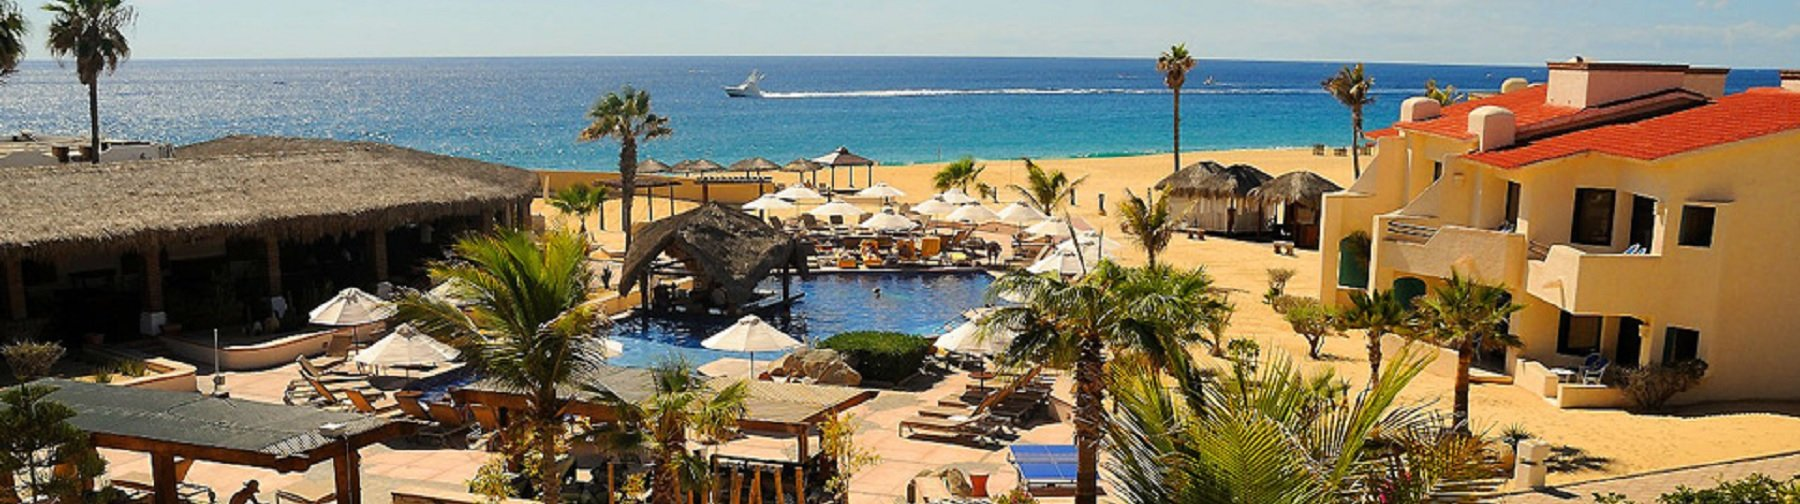 Cabo San Lucas Spring Break 2018 Student Deal – Solmar Resort